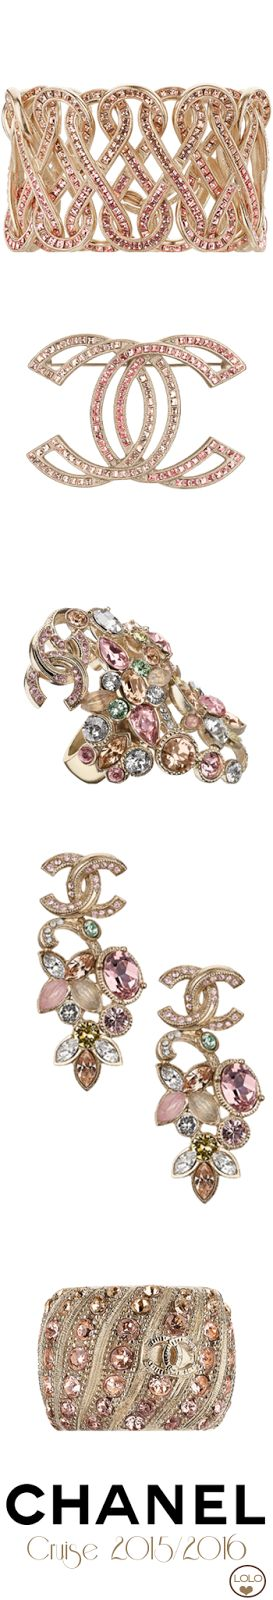 Chanel Cruise 2015/16 Jewelry Collection | LOLO❤